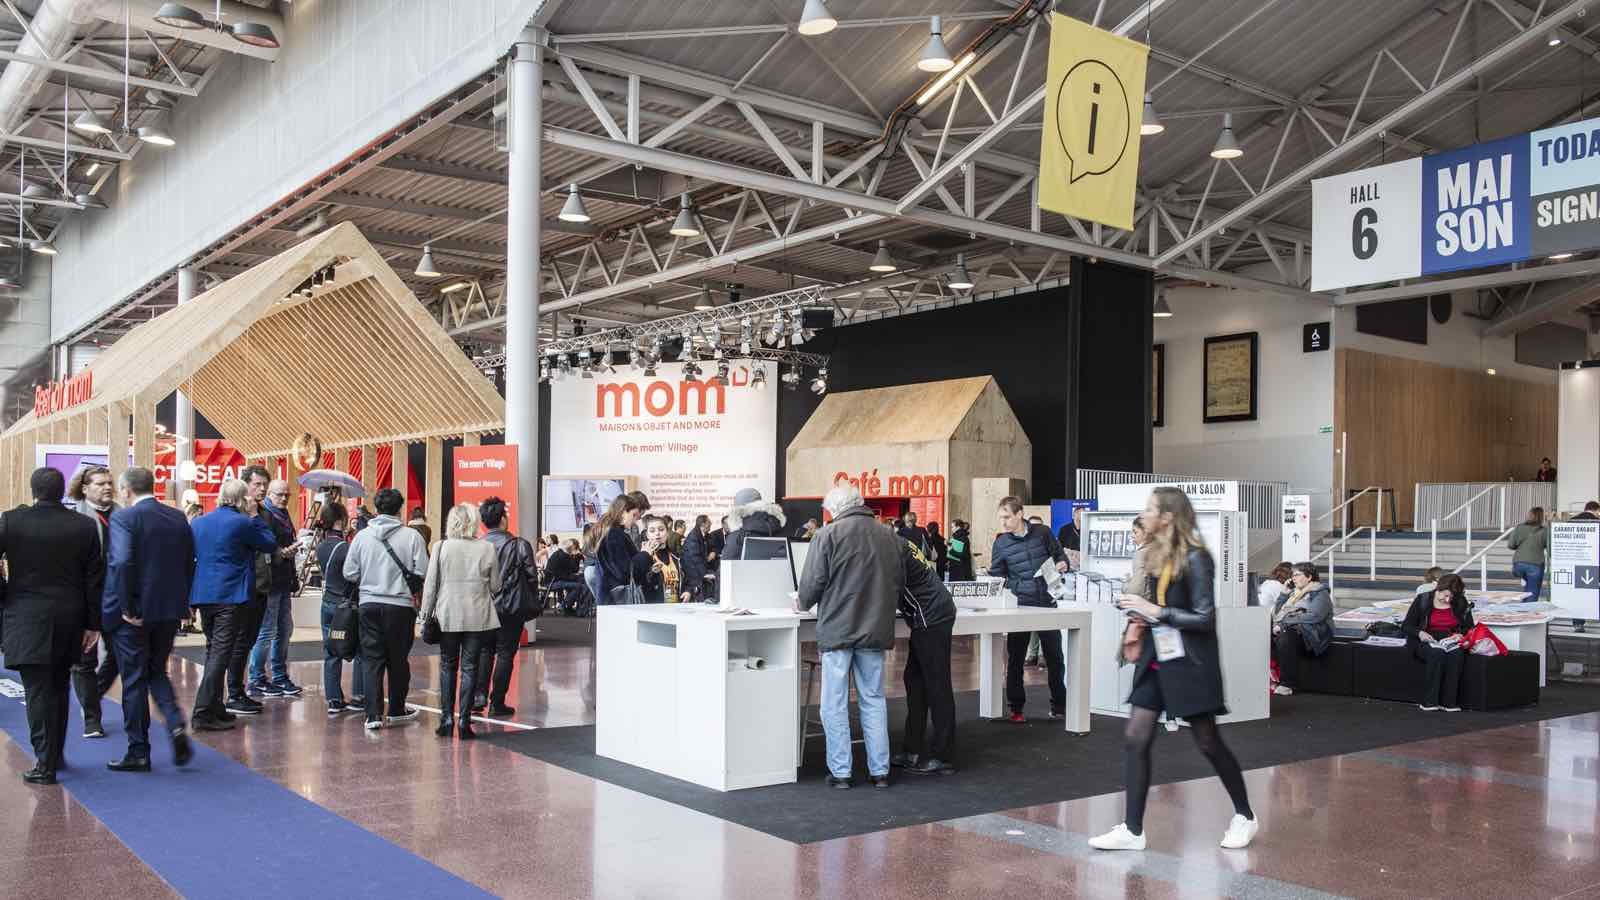 MaisonObjet2020 - All photos by ©AETHION.